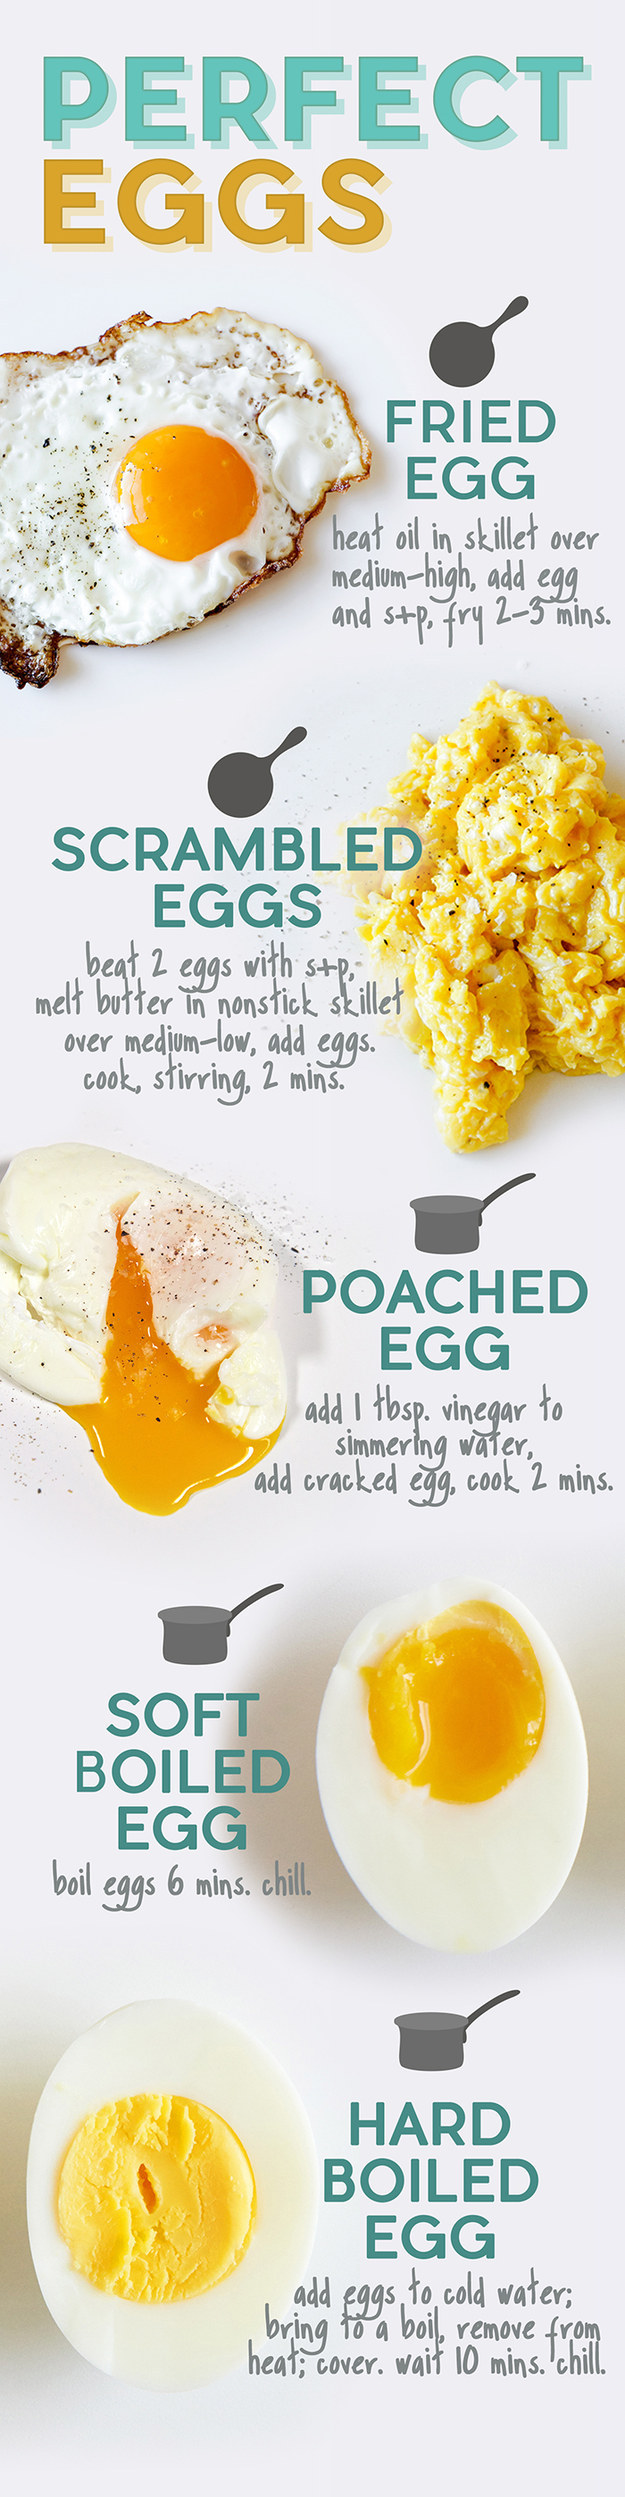 Here's The Best Way To Scramble Your Eggs